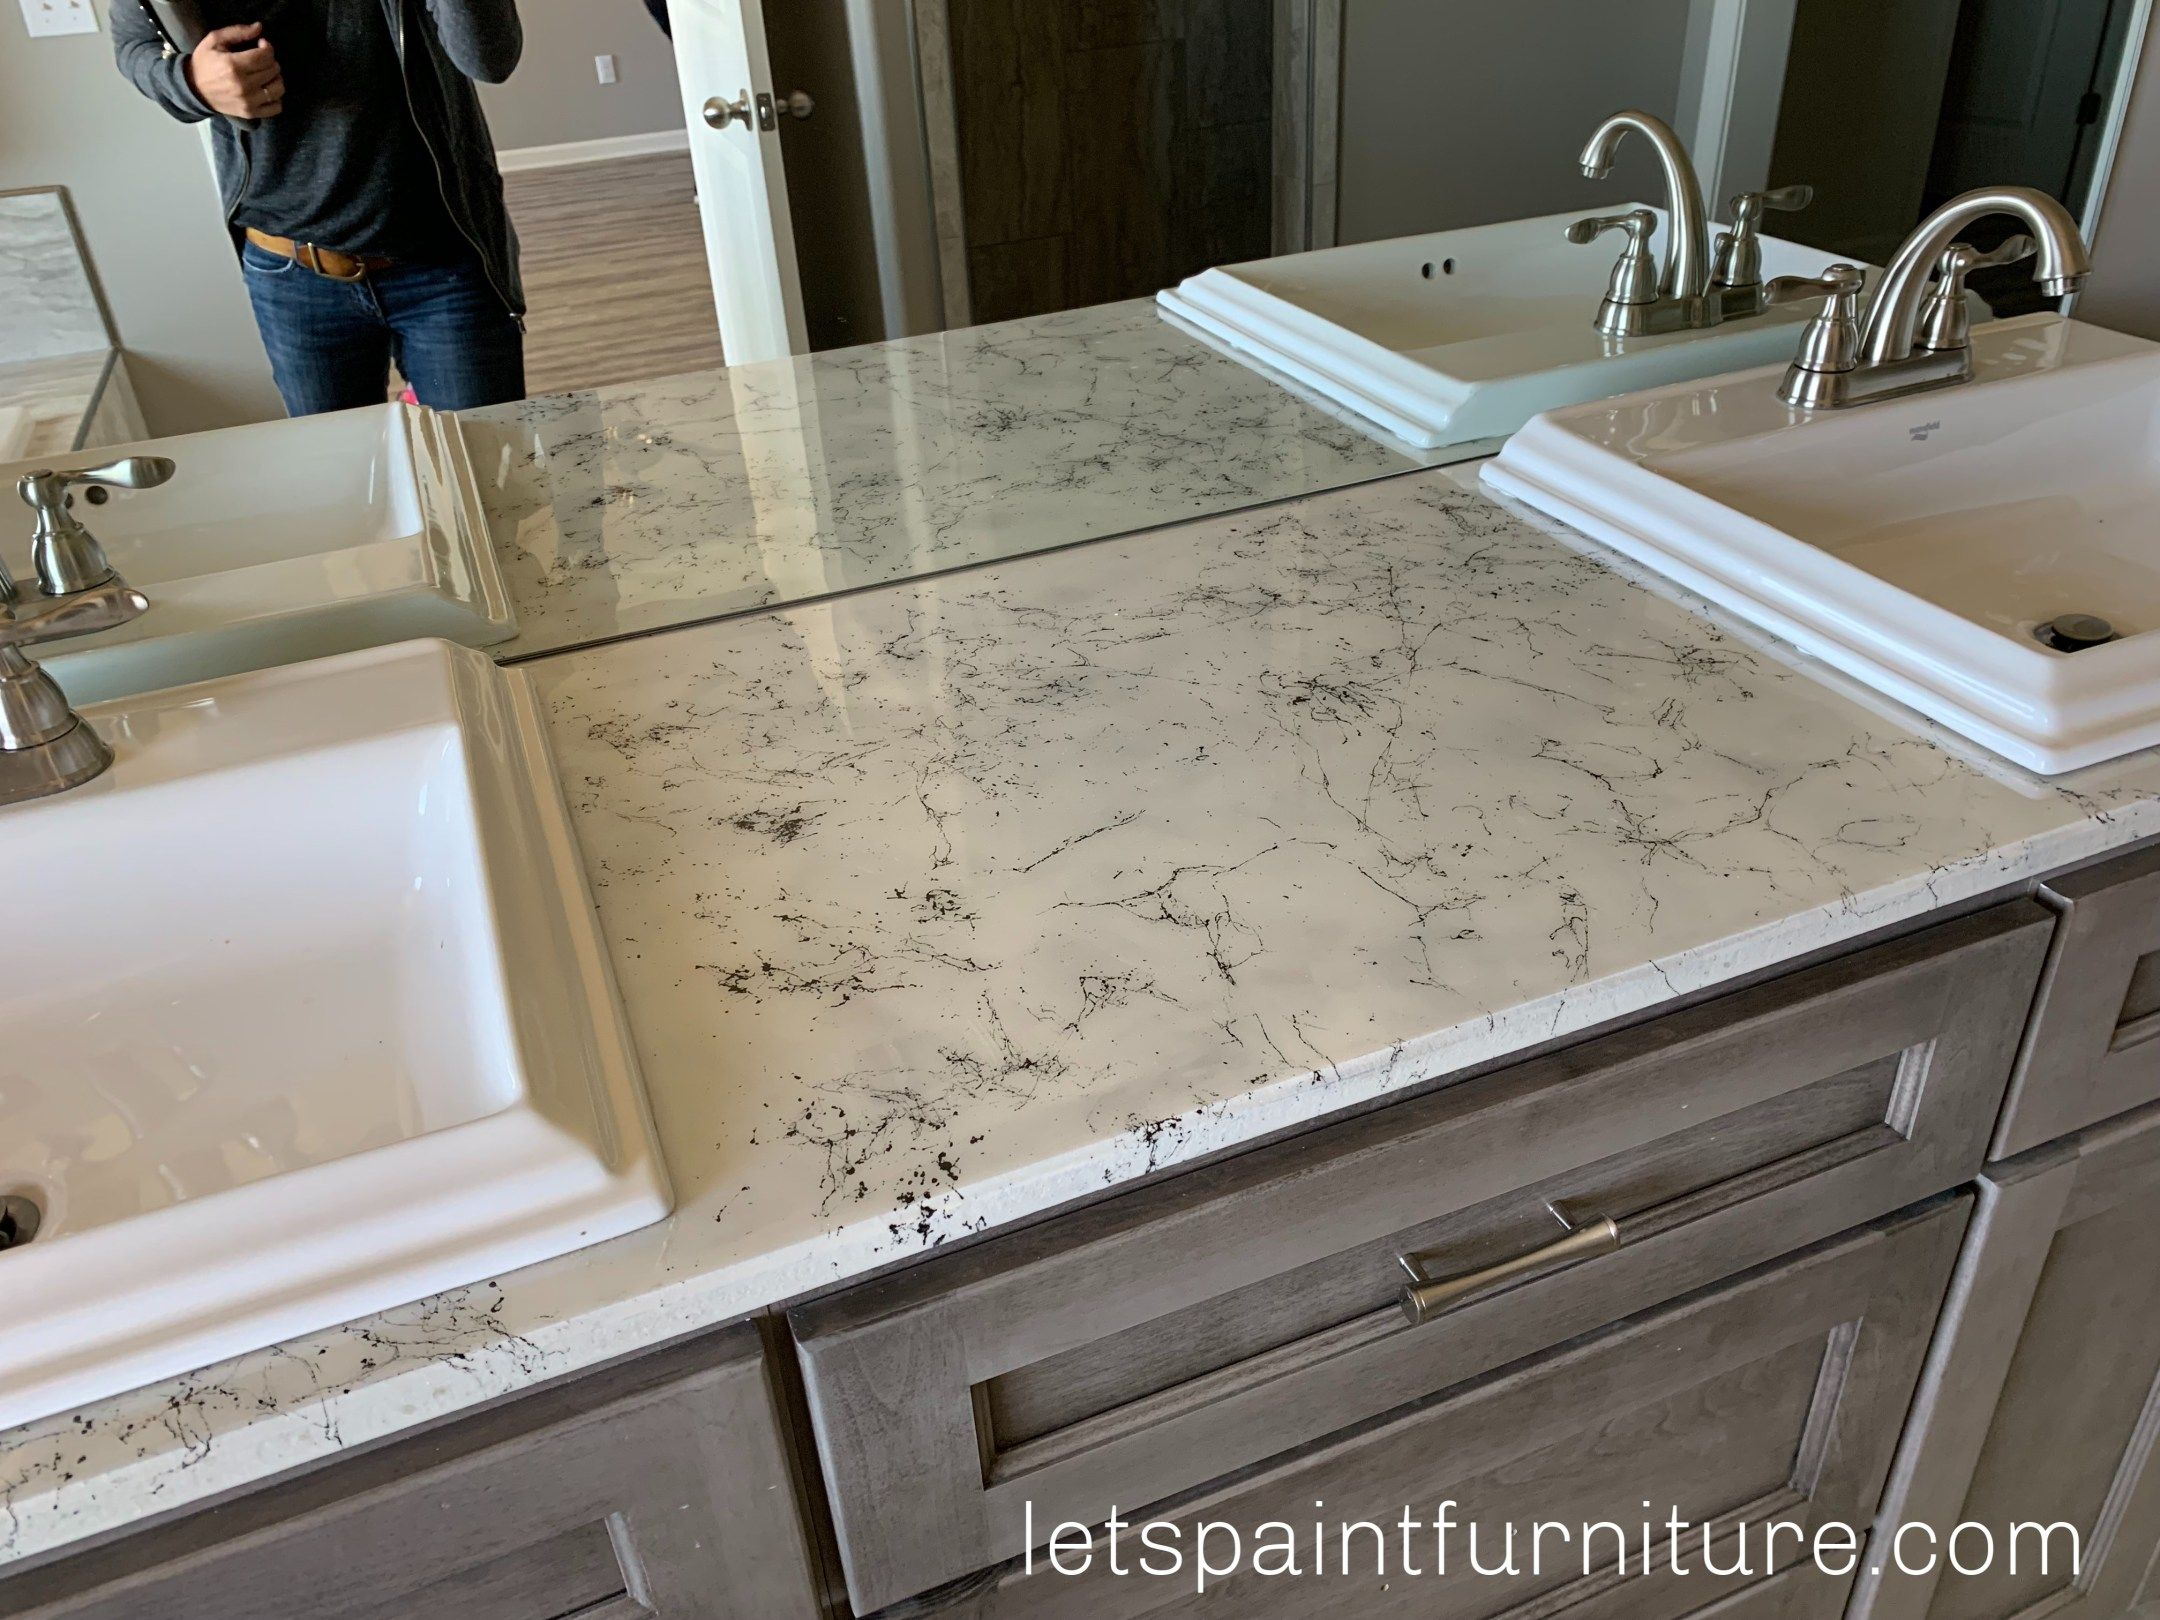 How To Faux Marble A Countertop With Epoxy Let S Paint Furniture